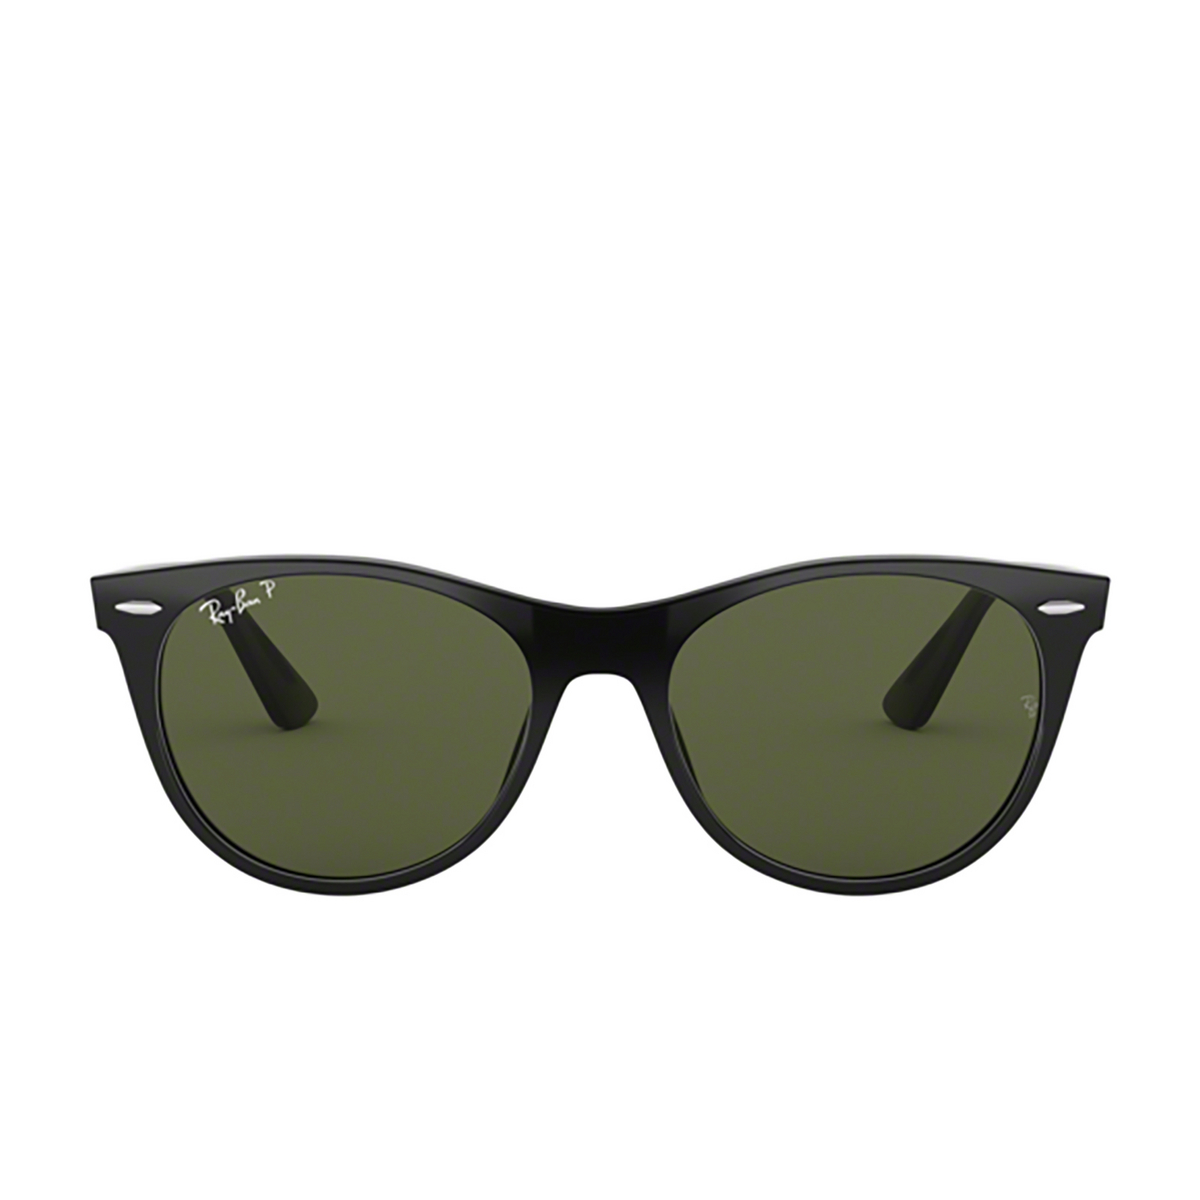 Ray-Ban® Square Sunglasses: Wayfarer Ii RB2185 color Black 901/58 - front view.